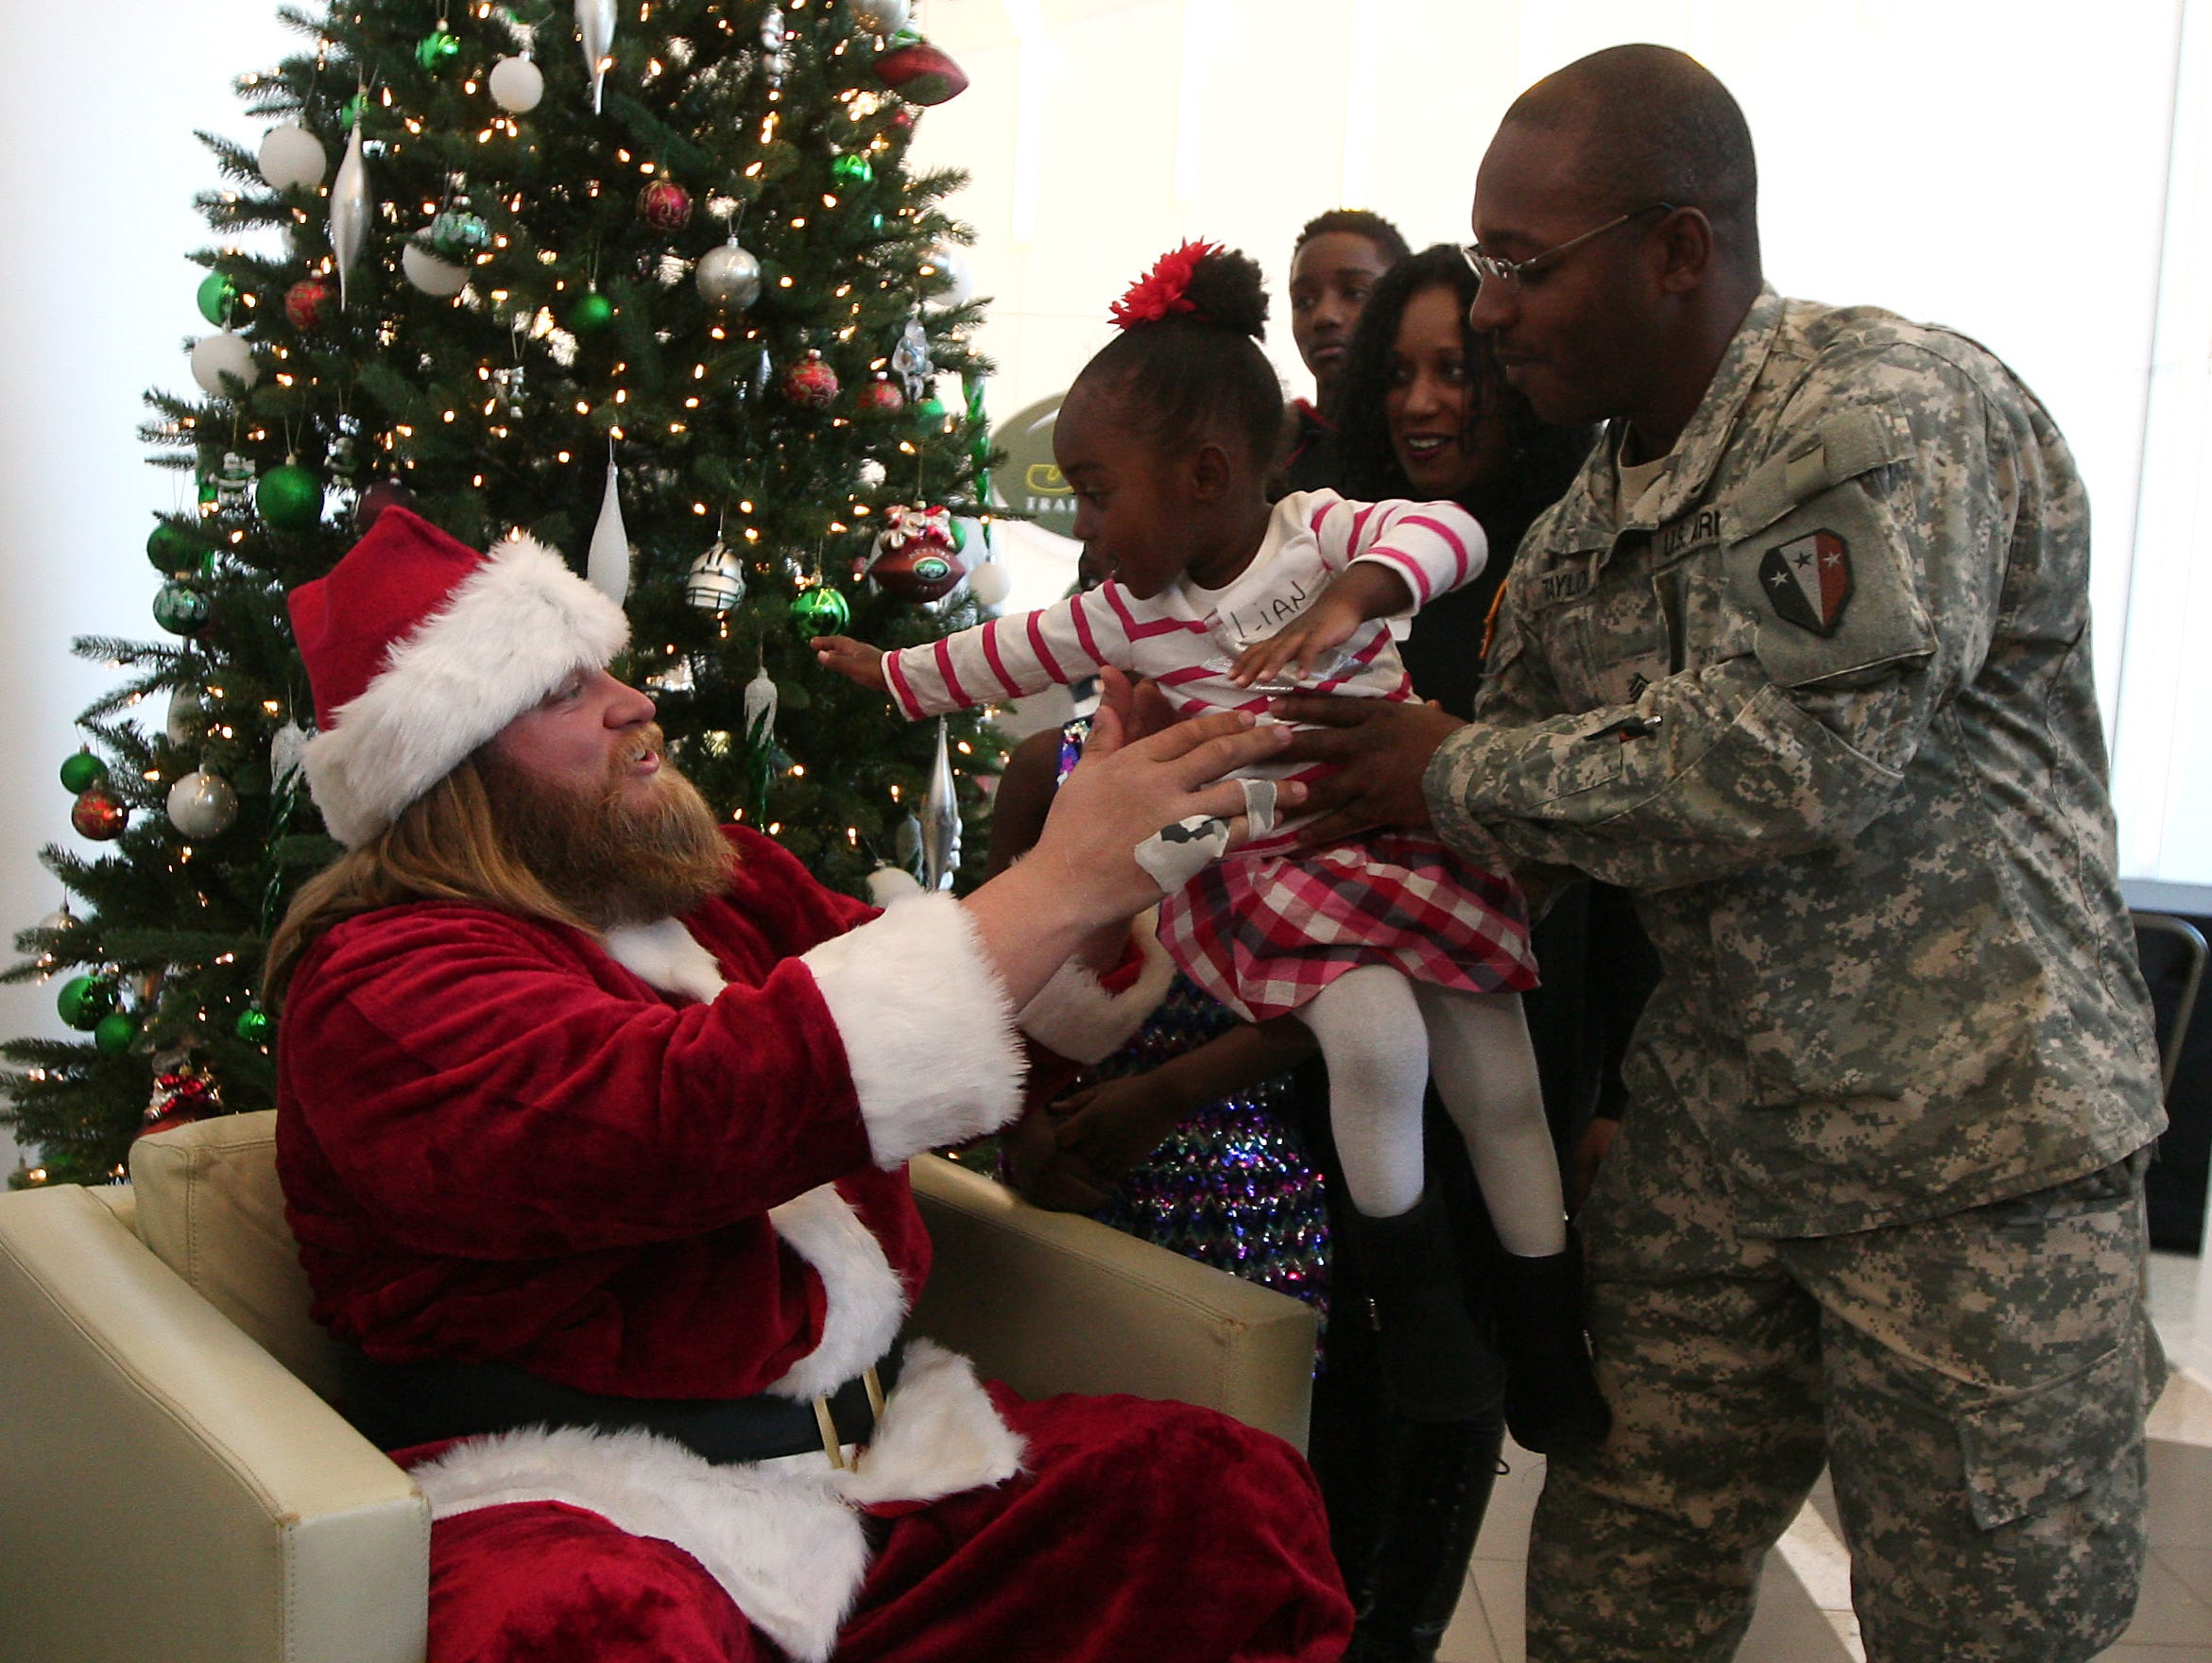 Donza Taylor of Bayonne hands over daughter 2-year-old Lian to Jets Pro Bowl center Nick Mangold as the New York Jets hosted a holiday party for military families at their Florham Park training facility. December 4, 2015, Florham Park, NJ.